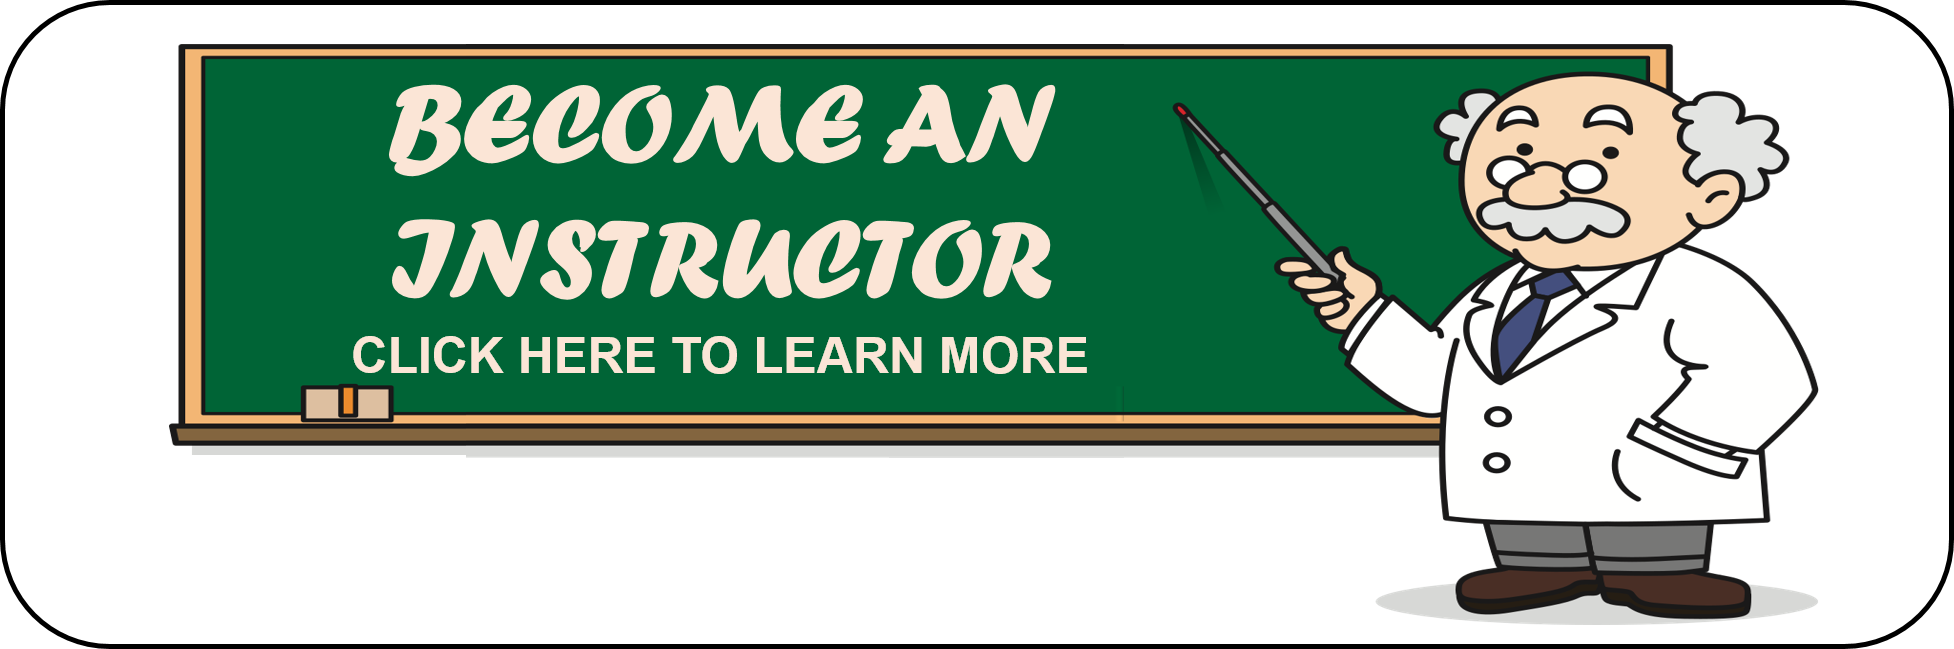 BECOME AN INSTRUCTOR BUTTON